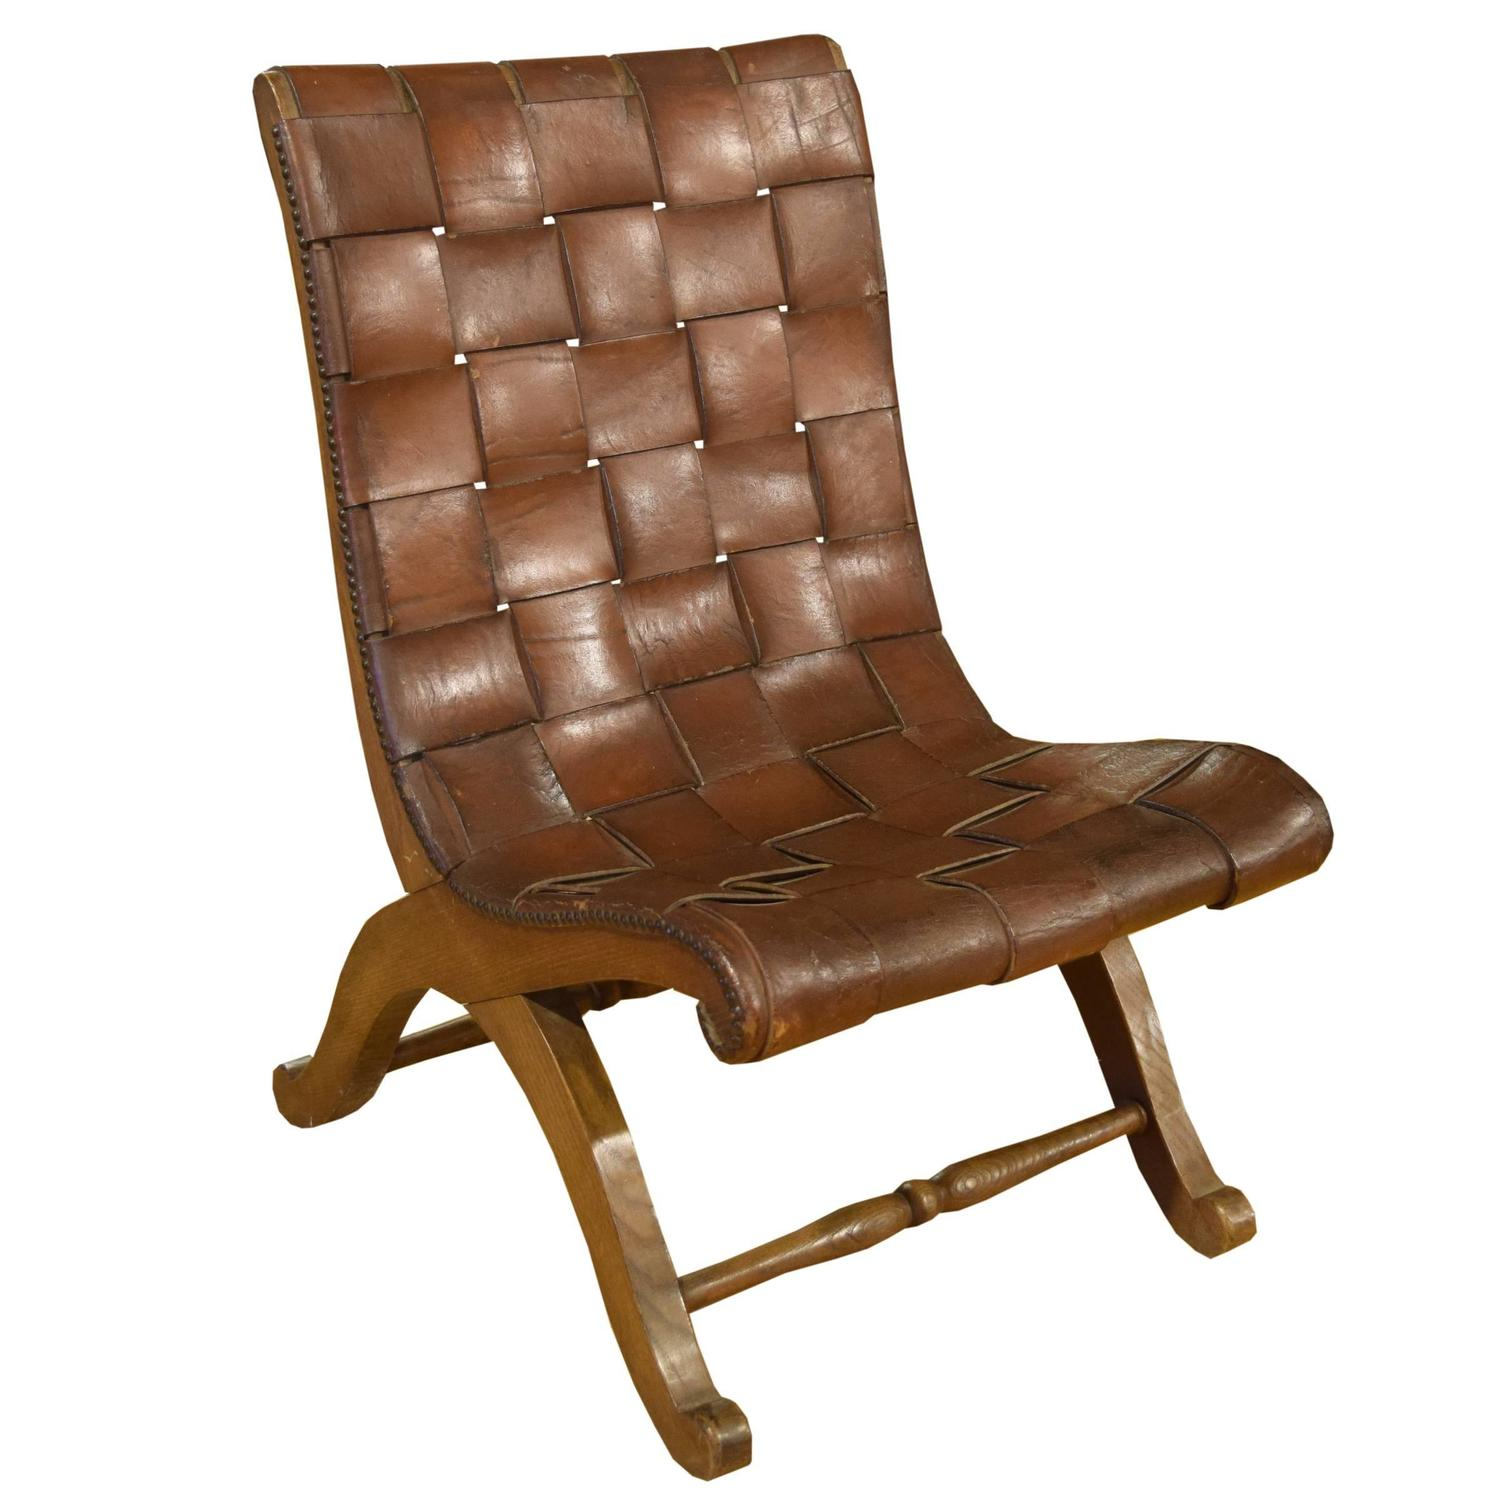 French Woven Leather Chair For Sale at 1stdibs